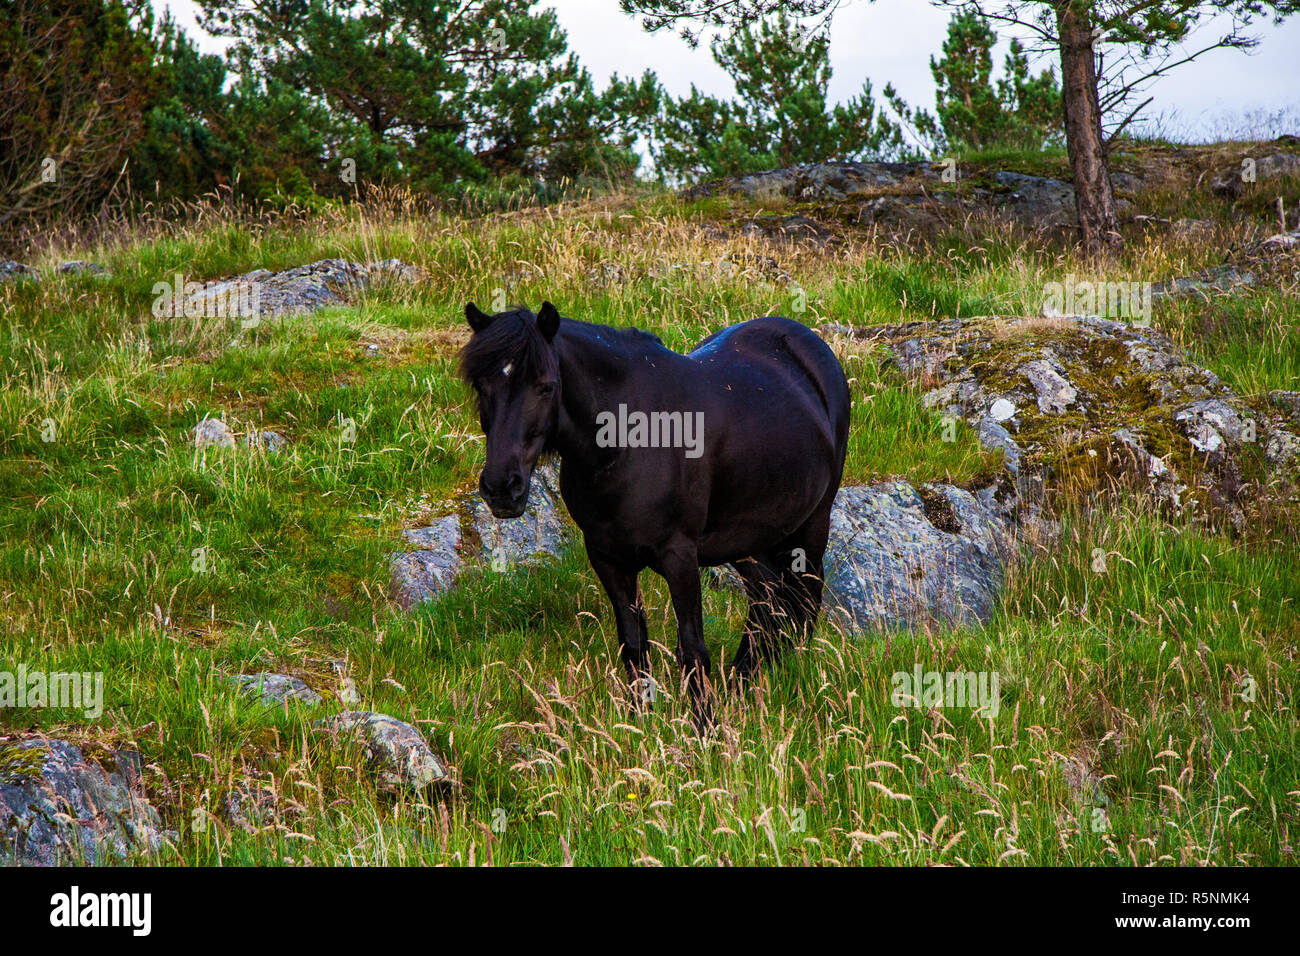 Black horse in wild - Stock Image